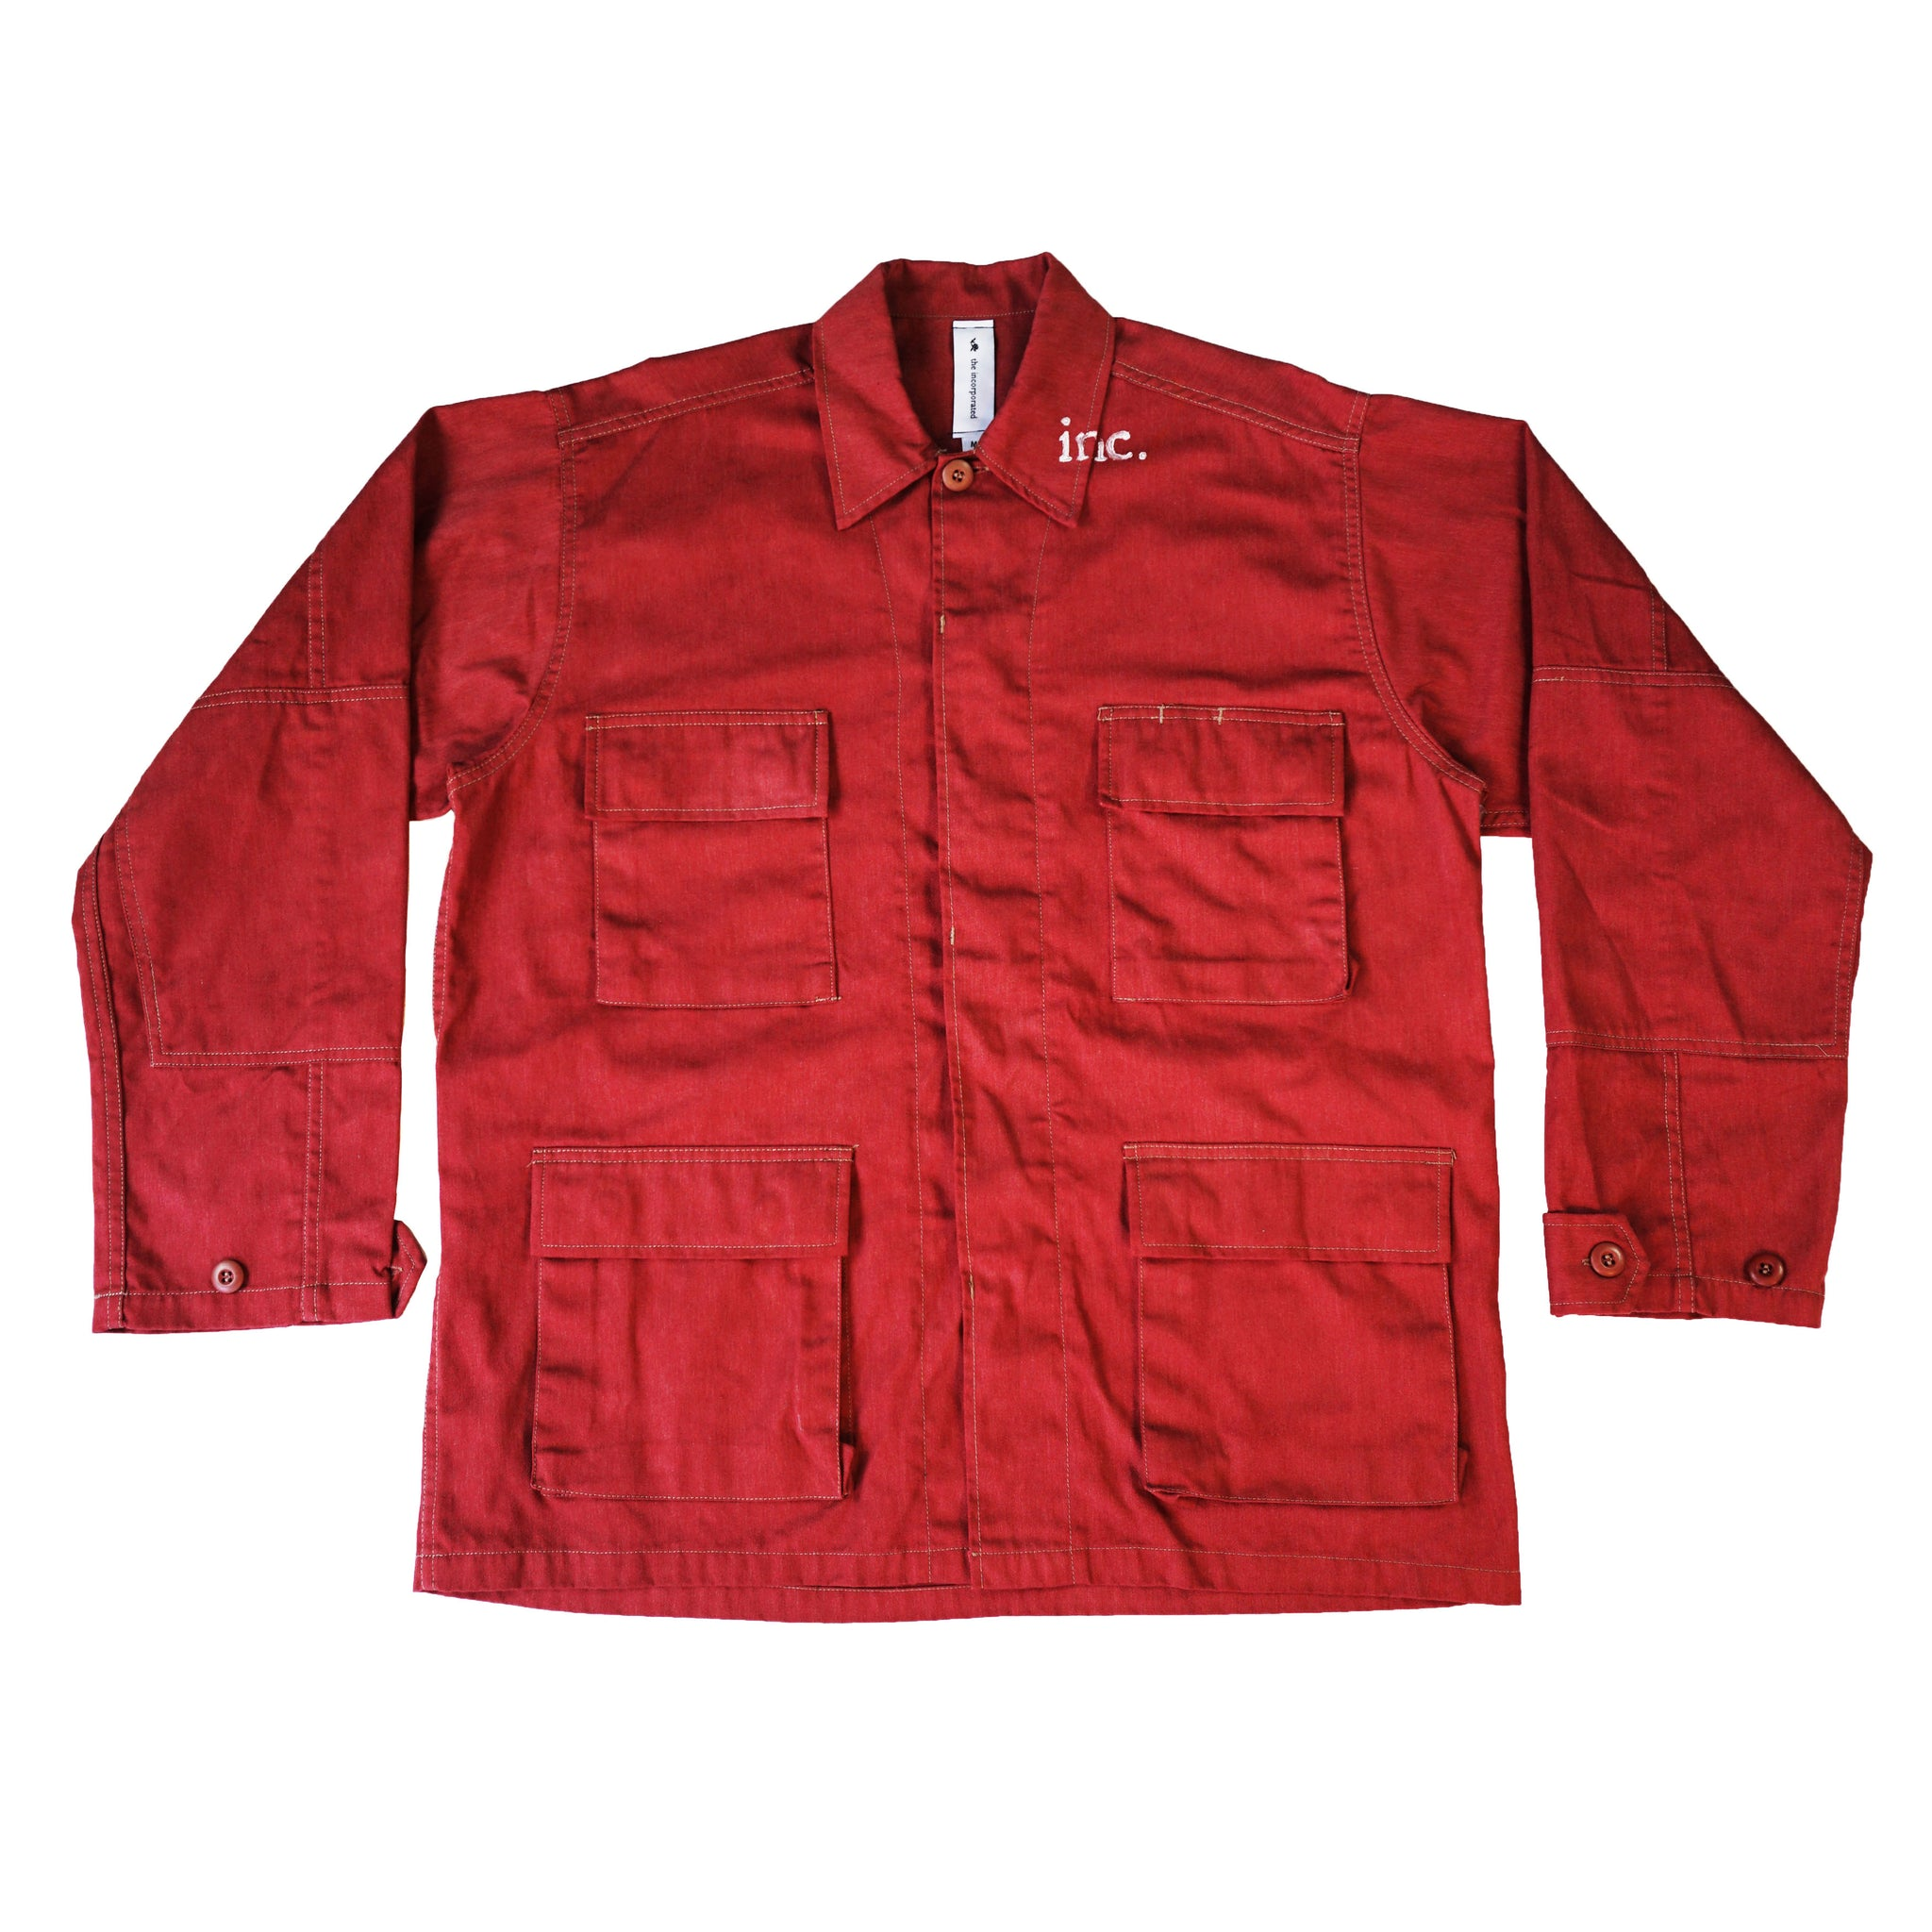 THE AGITATOR Cargo Jacket / RED - The Incorporated